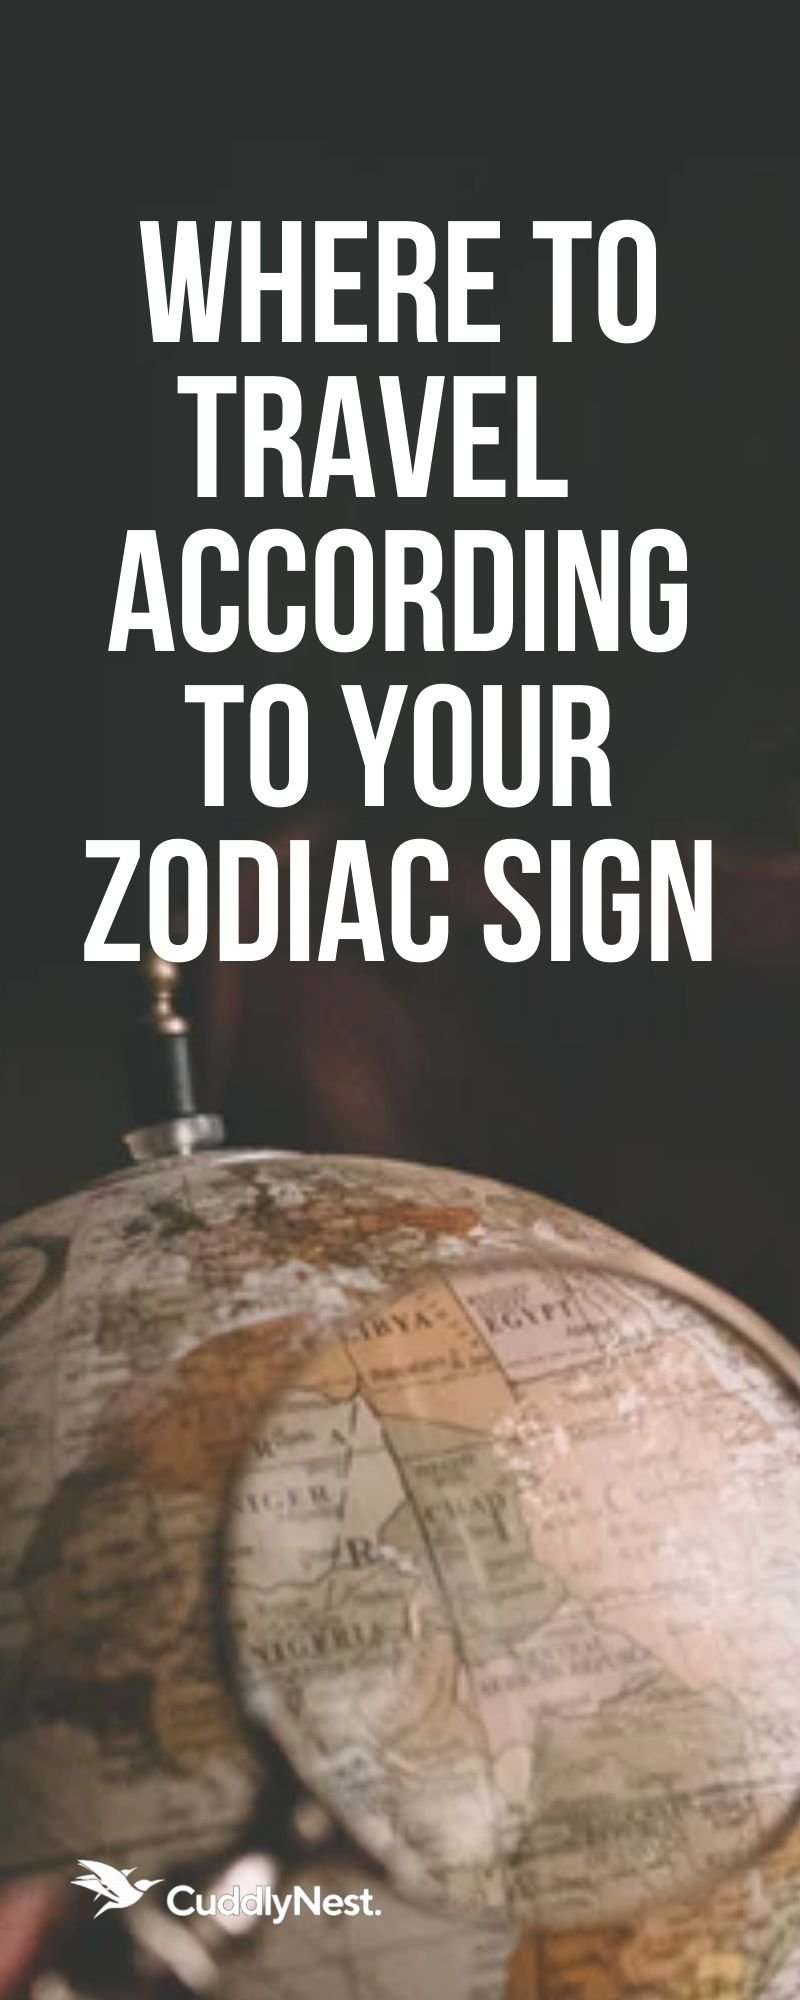 CuddlyNest Best Travel Destination Inspiration for 2020 - where to go according to your zodiac sign? Aries, Saggitarius or Leo - best travel destinations for Áries, Touro, Gêmeos, Câncer, Leão, Virgem, Libra, Escorpião, Sagitário, Capricórnio, Aquário e Peixes, le Bélier, le Taureau, les Gémeaux, le Cancer, le Lion, la Vierge, la Balance, le Scorpion, le Sagittaire, le Capricorne, le Verseau et les Poissons.